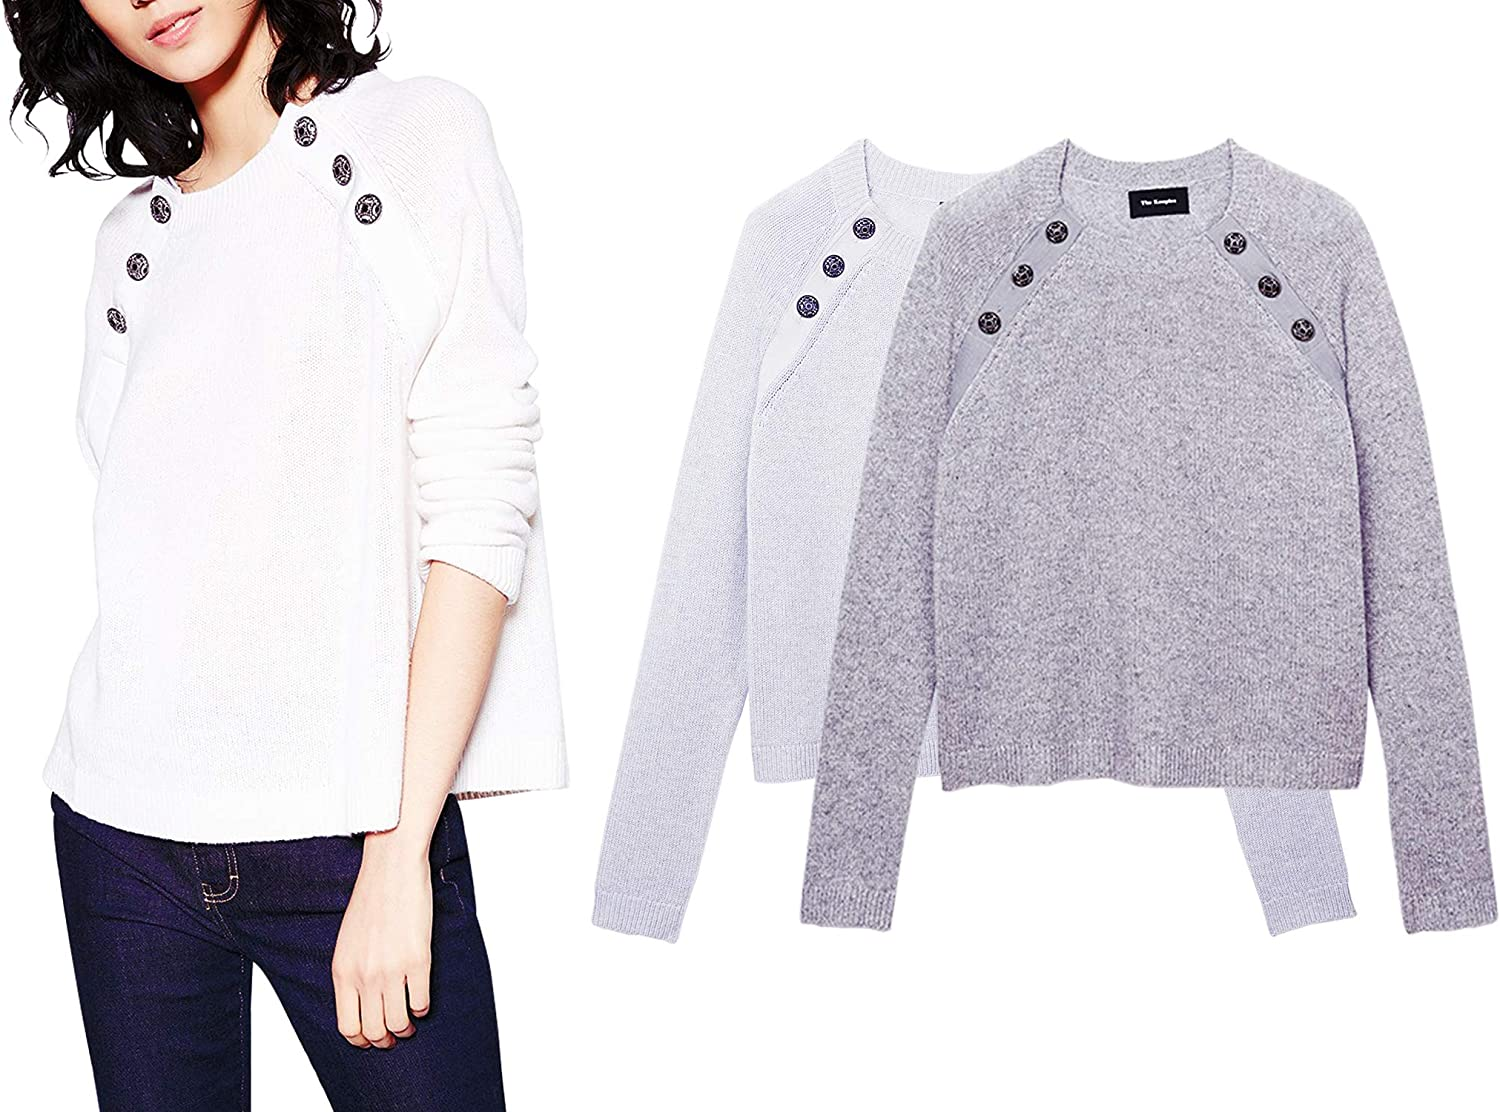 YISHI Fashion Women's Clothes Simplicity Style Top Button Knitted Sweater